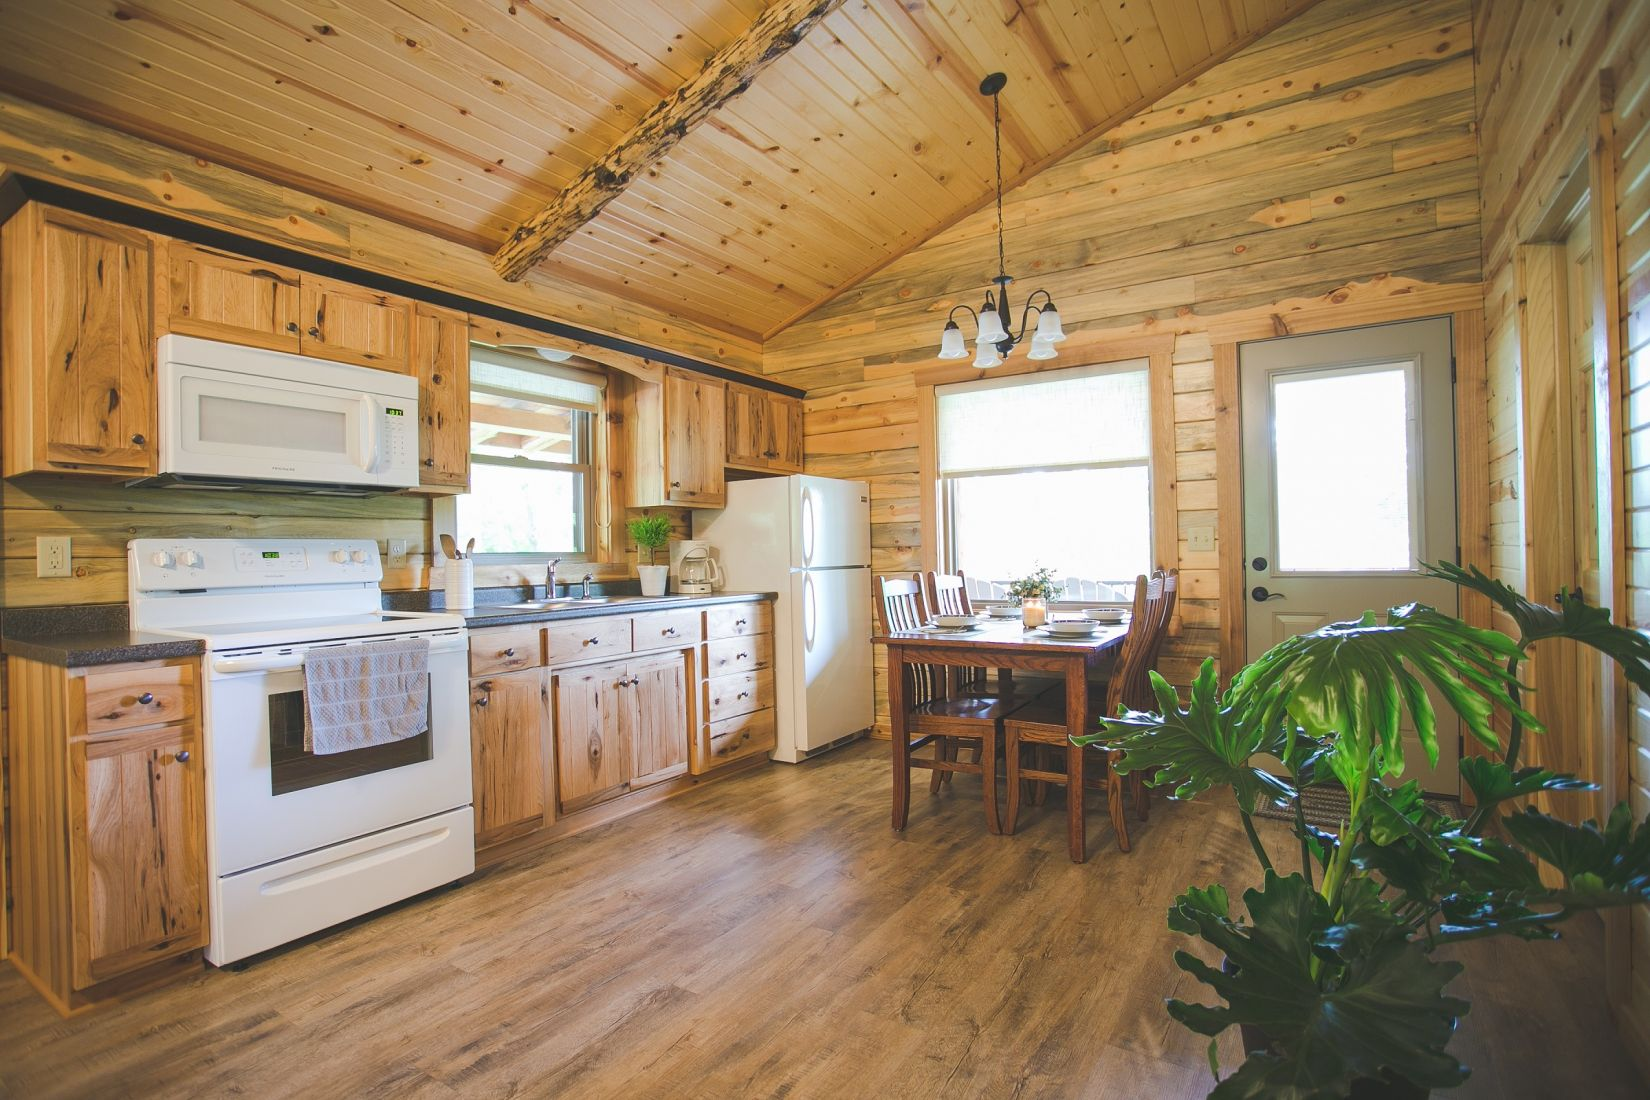 Custom Kitchen Cabinets with White Appliances in Log Home